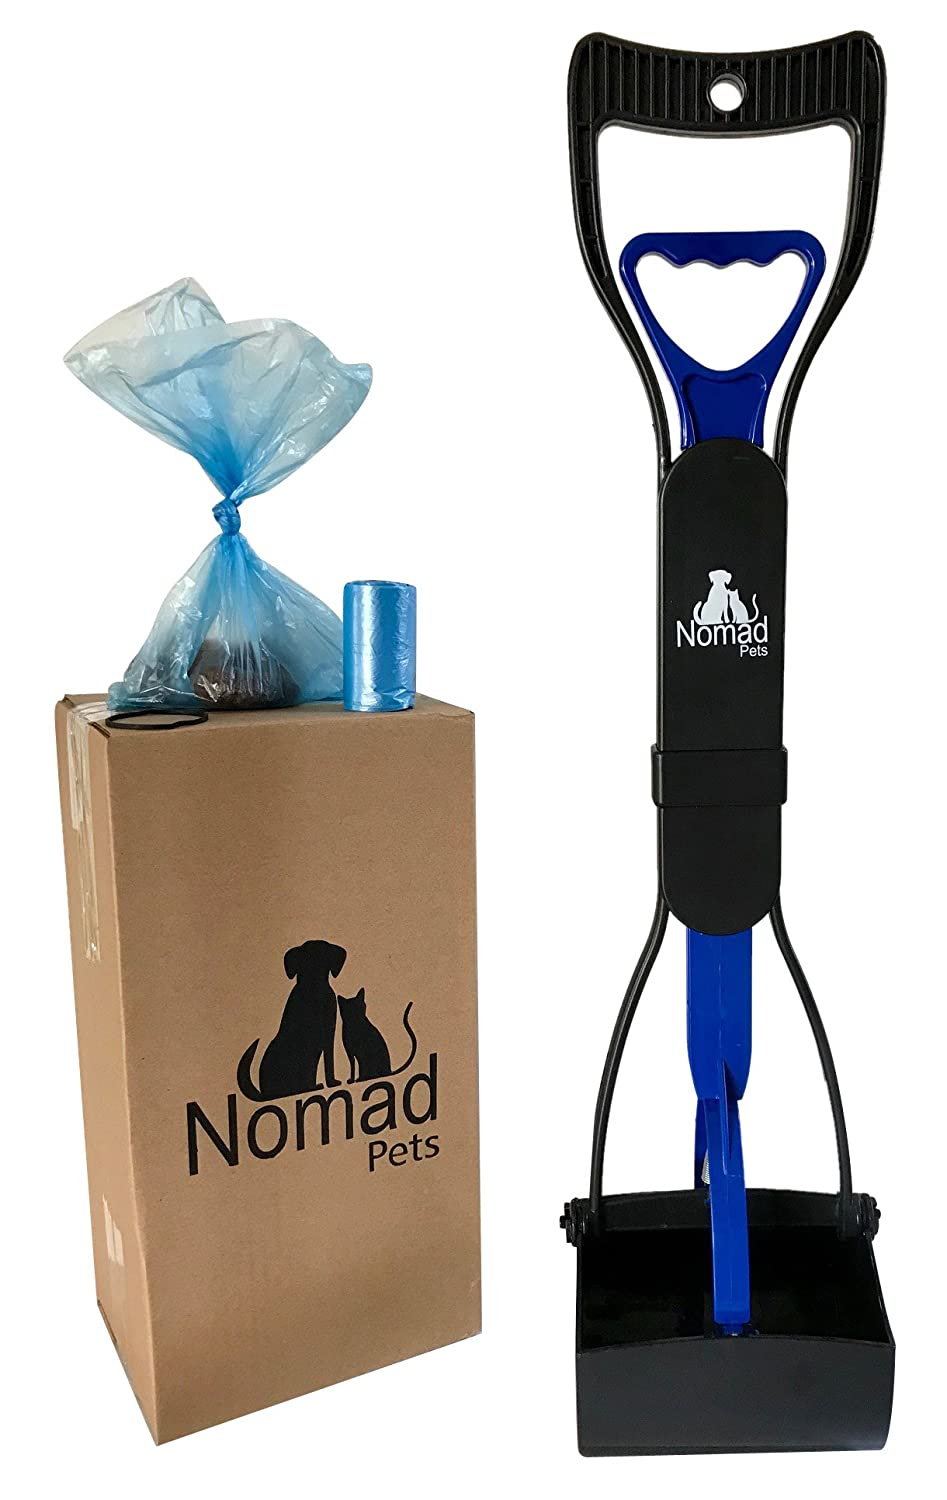 Complete Pooper Scooper Set for Dogs with Large Poop Bags Included - Best for Small, Medium, Large, XL Pets - Long Handle Scoop - Portable and Heavy ...